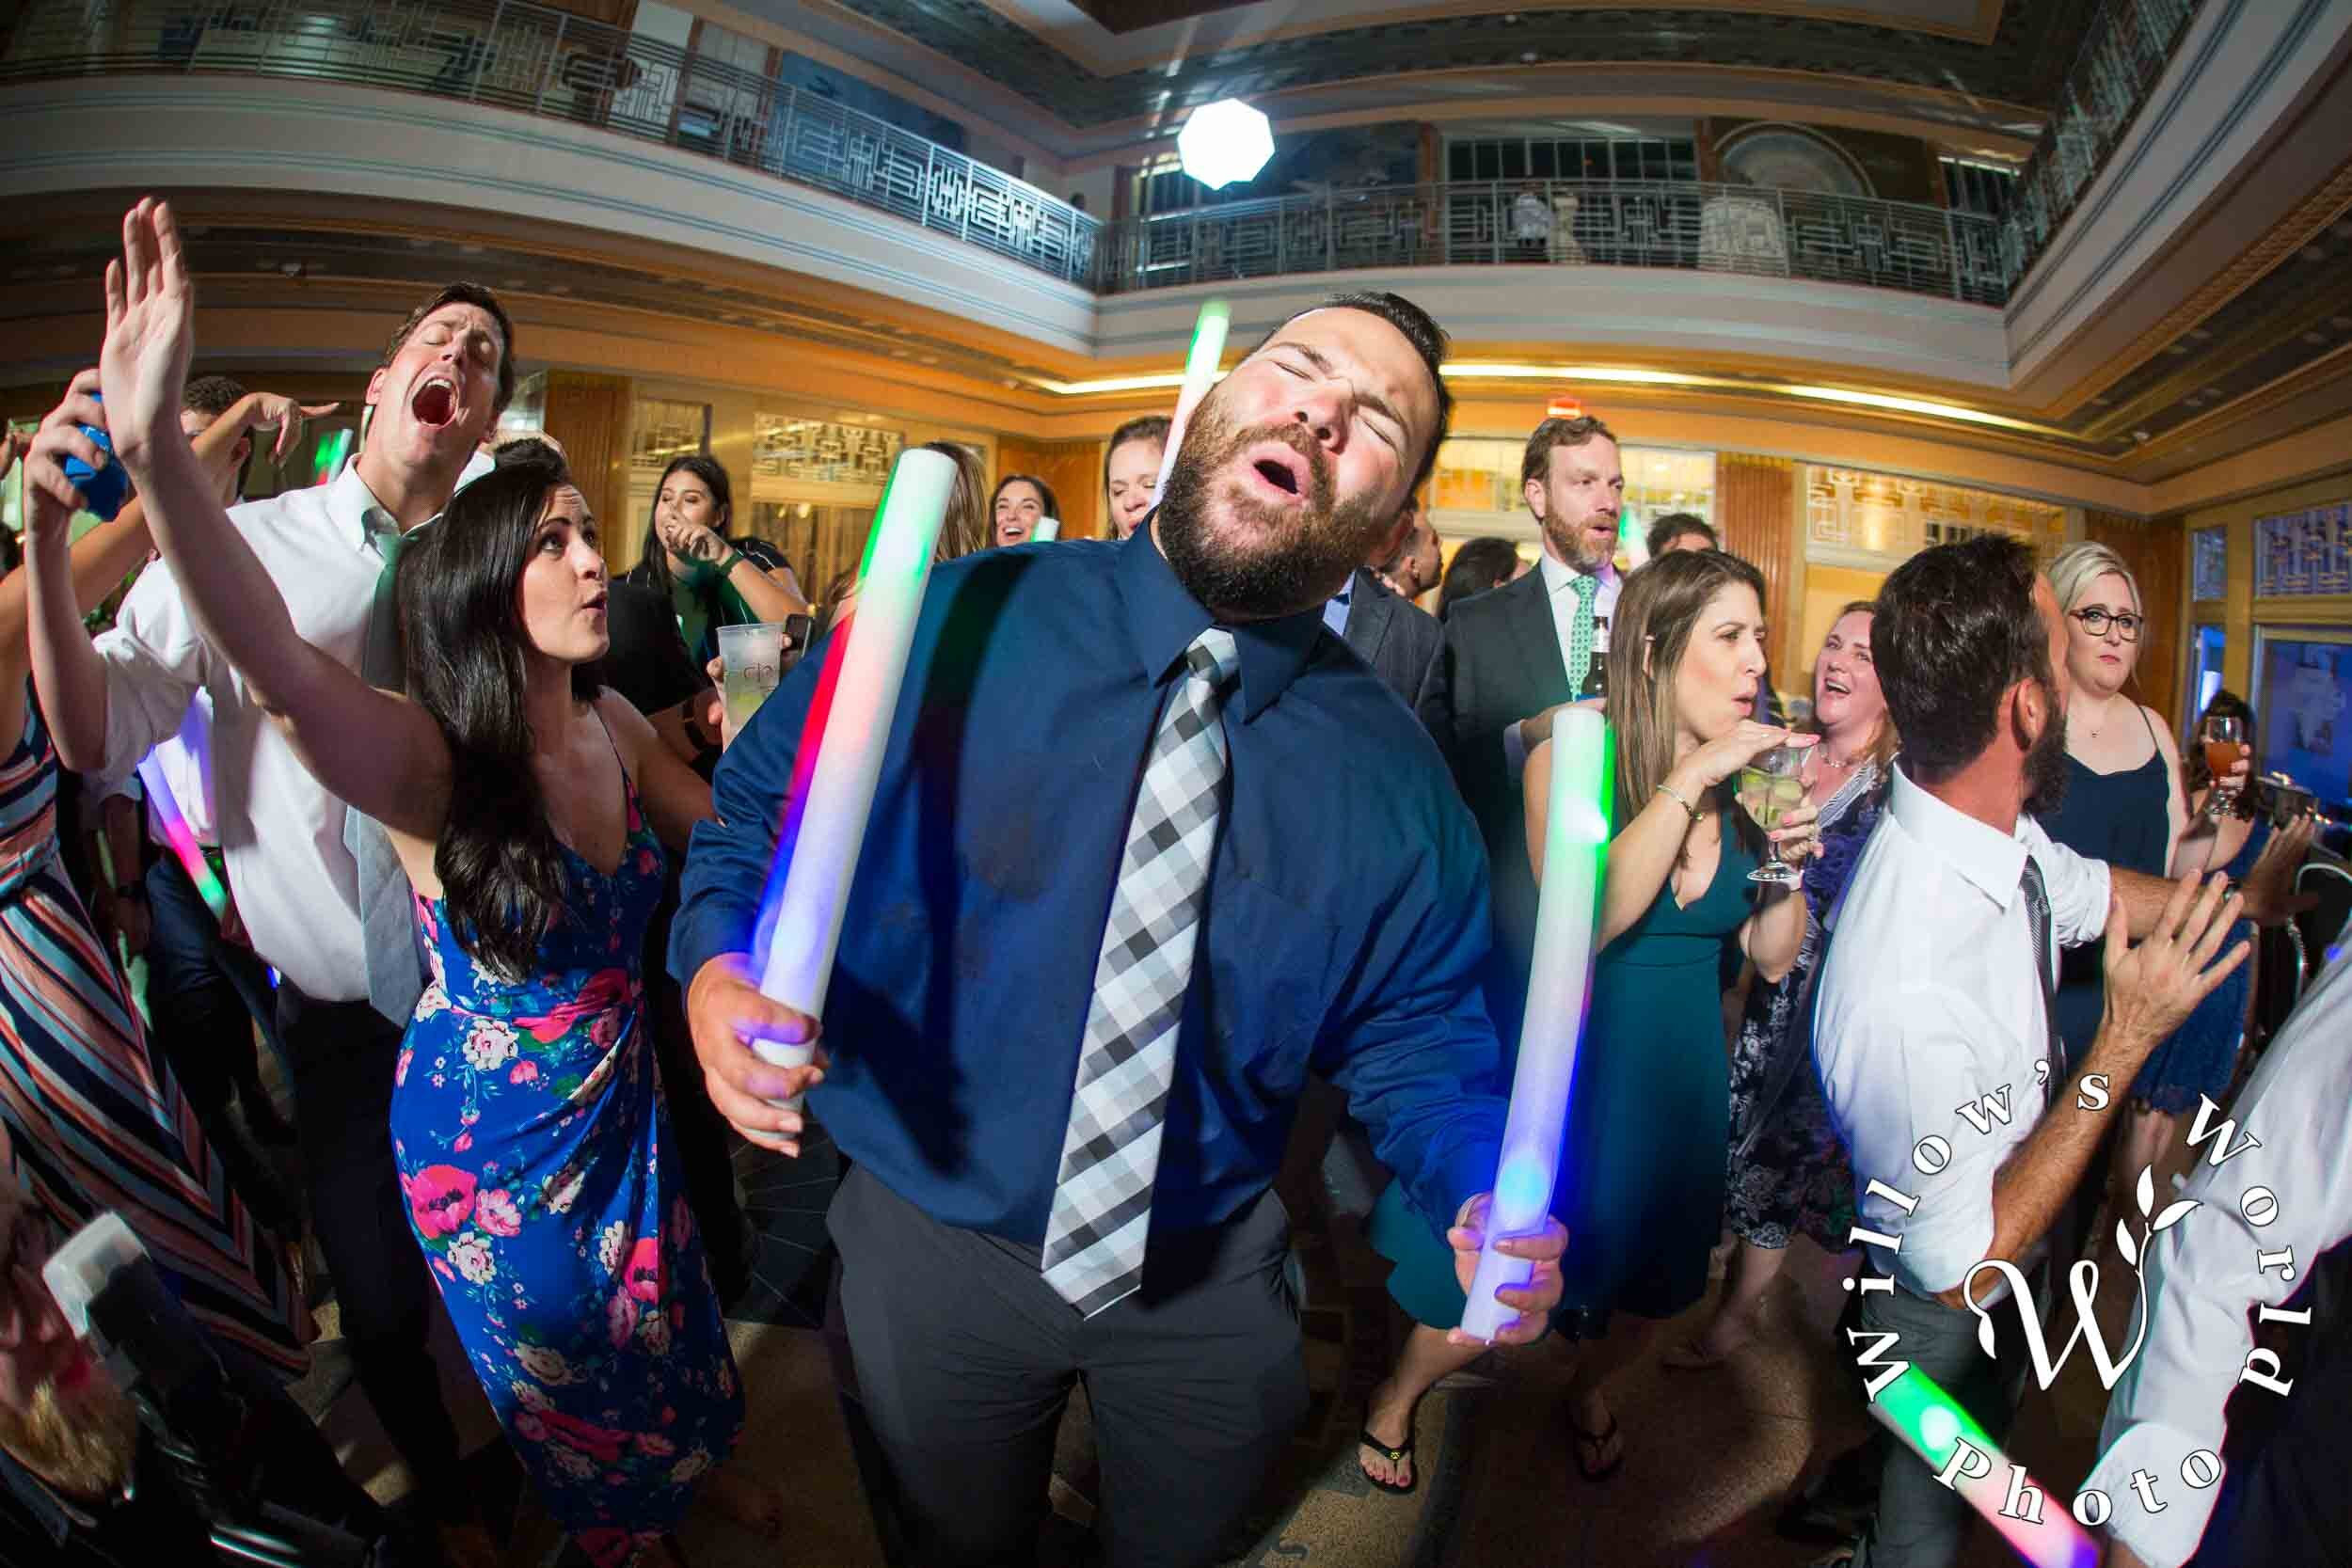 56-Messinas-at-the-Terminal-New-Orleans-Wedding-Reception-Photo-Willows-World-Photo-2.jpg